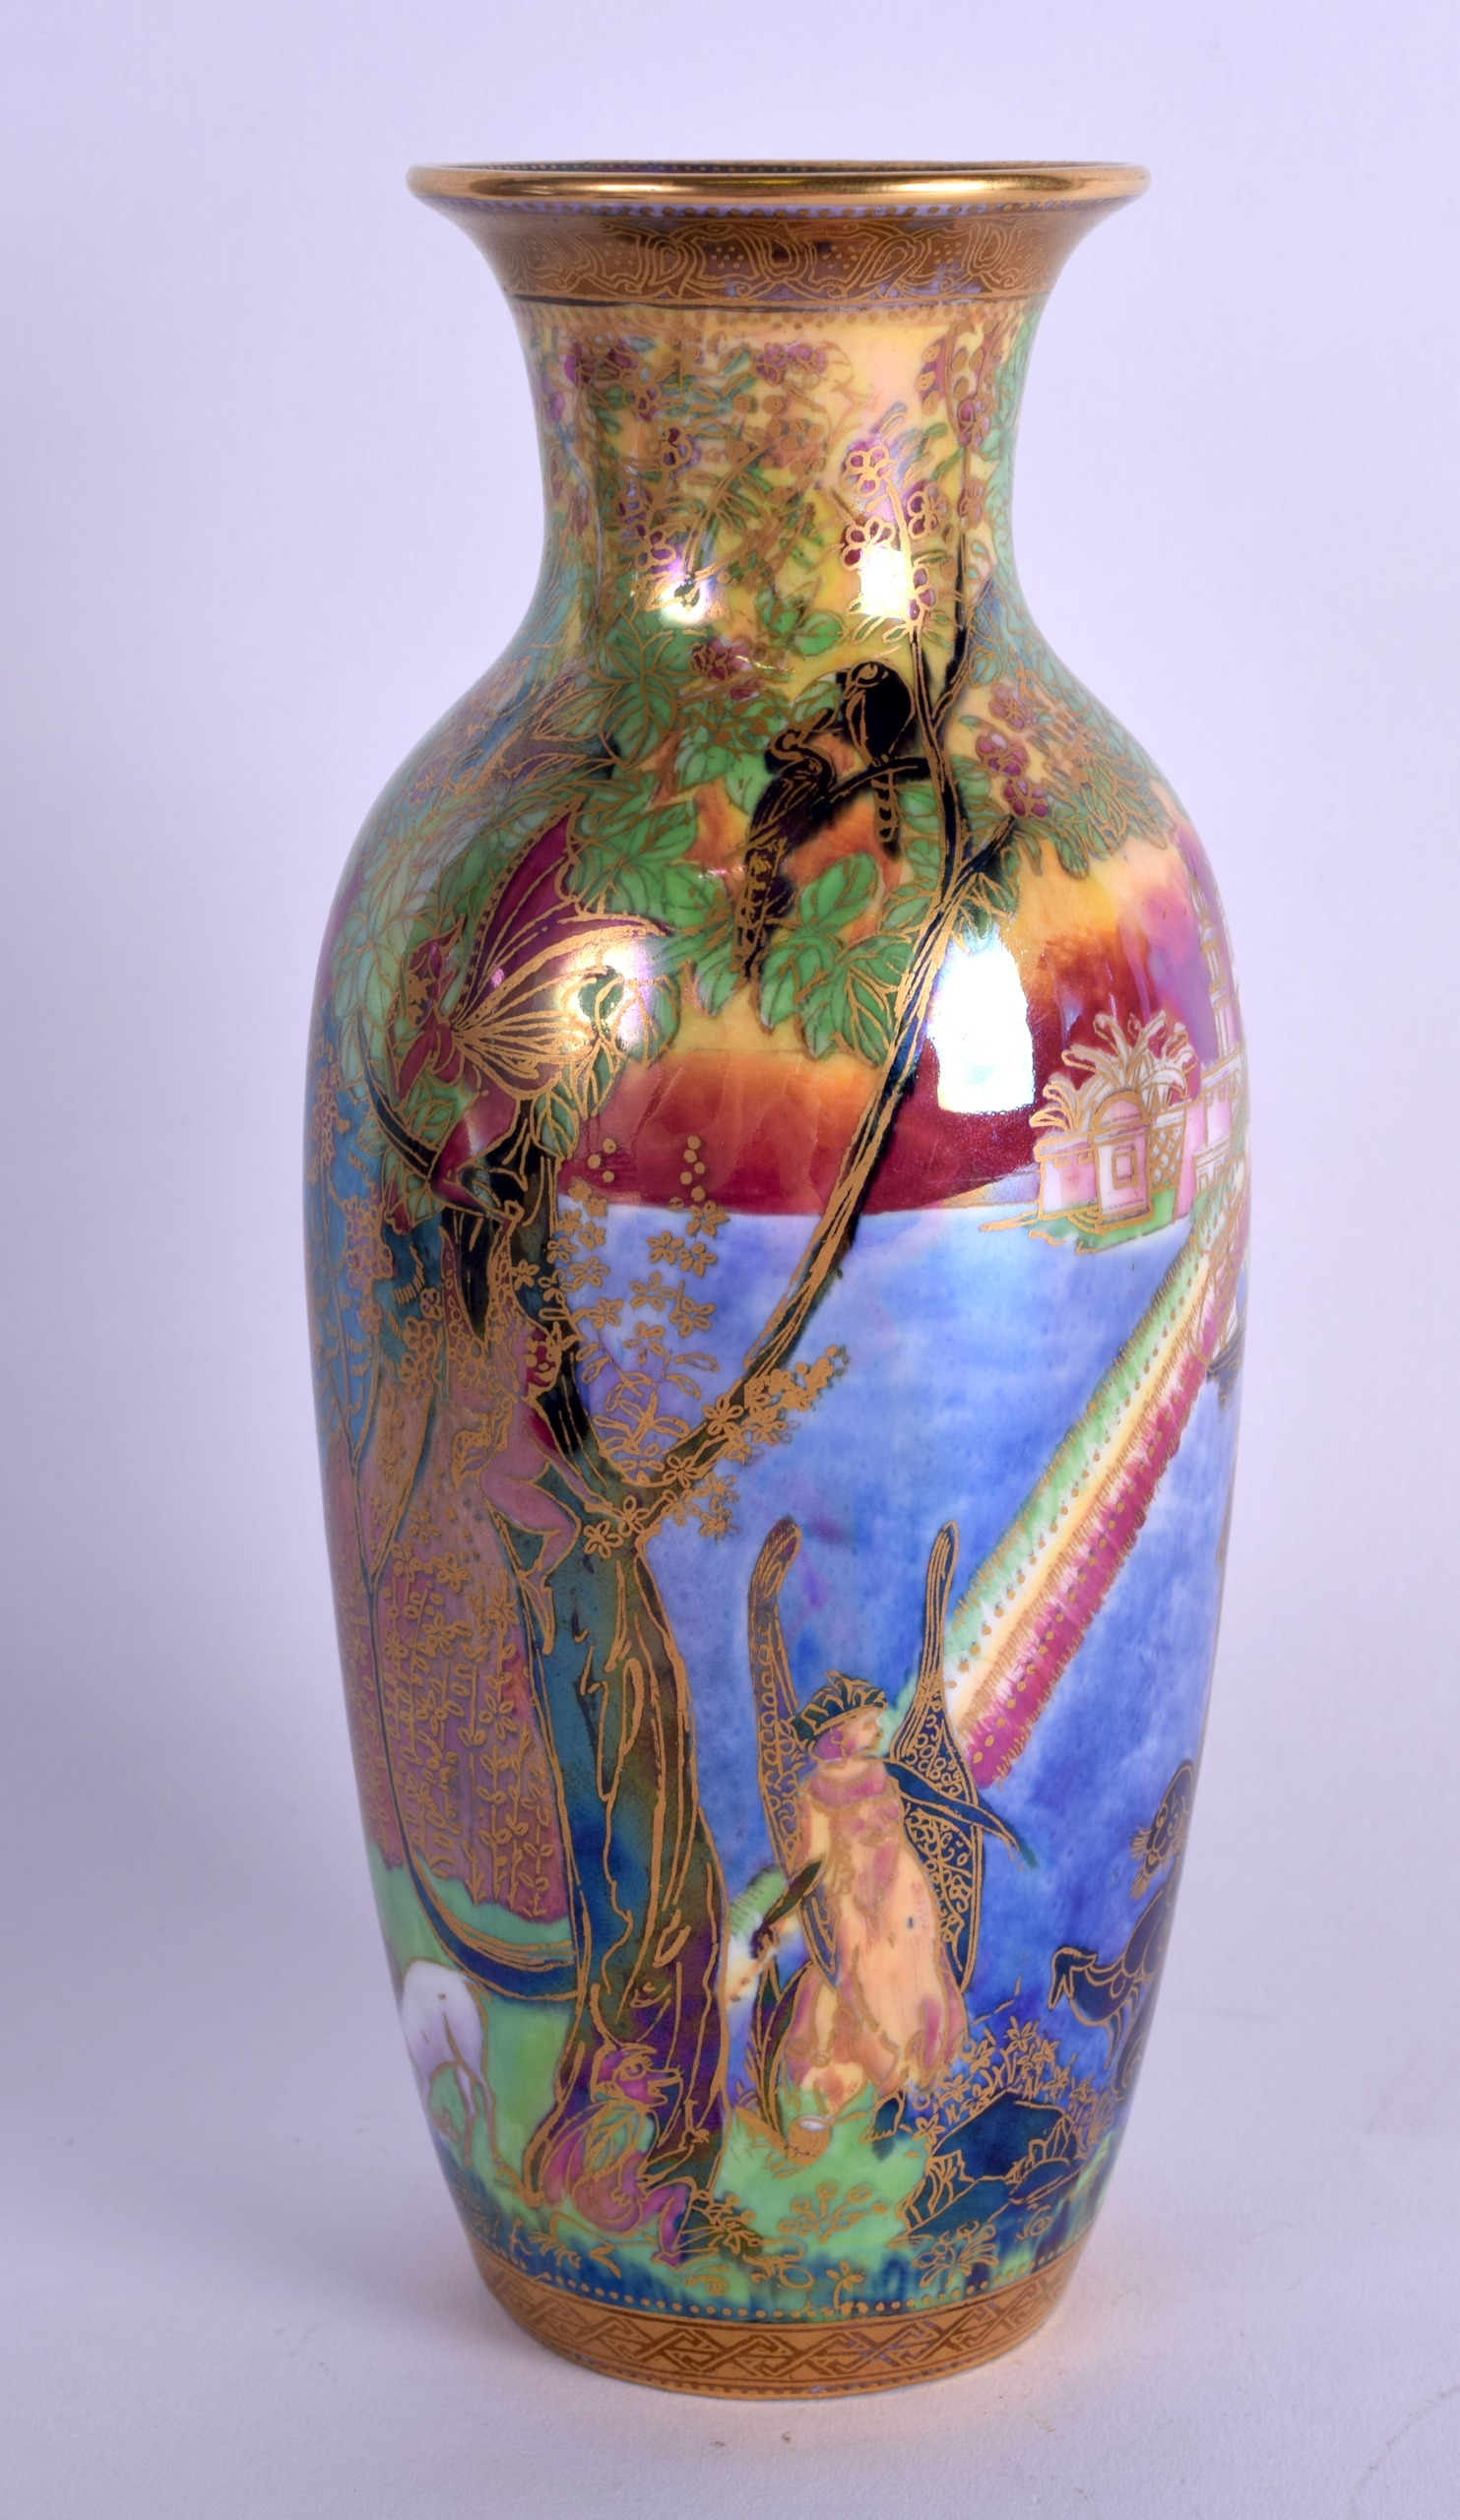 Lot 113 - A RARE WEDGWOOD FAIRYLAND LUSTRE PORCELAIN VASE by Daisy Makeig Jones, painted pixies and mythical